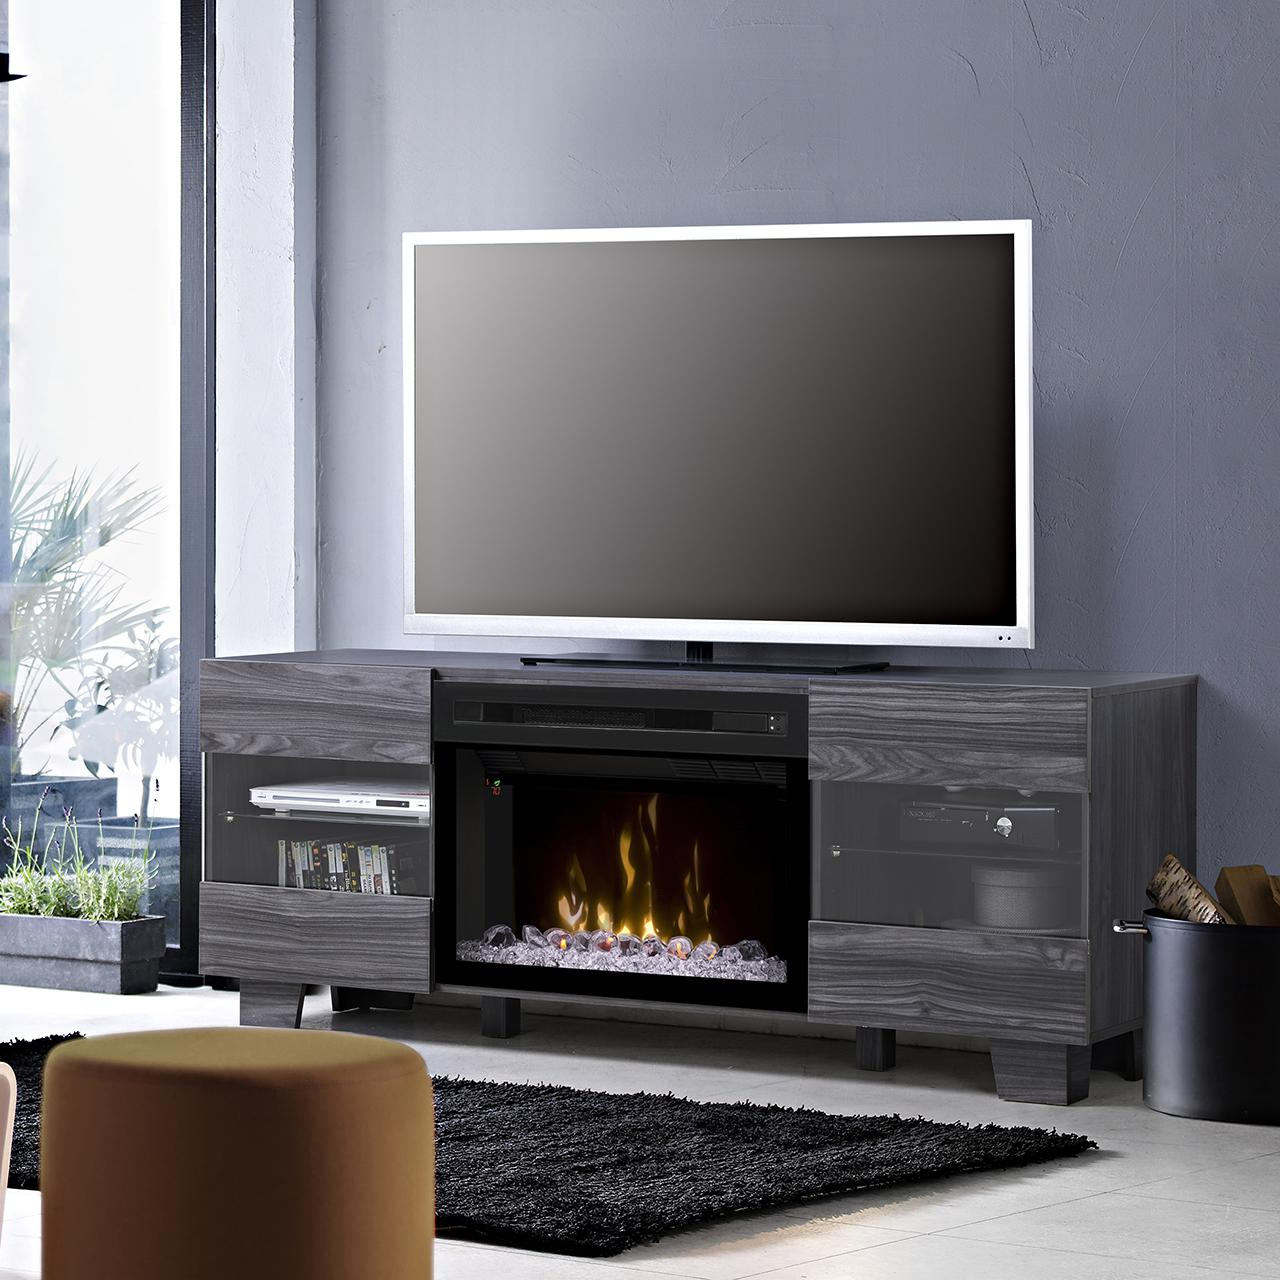 Dimplex Multi-Fire XD Max 62-Inch Electric Fireplace Medi...